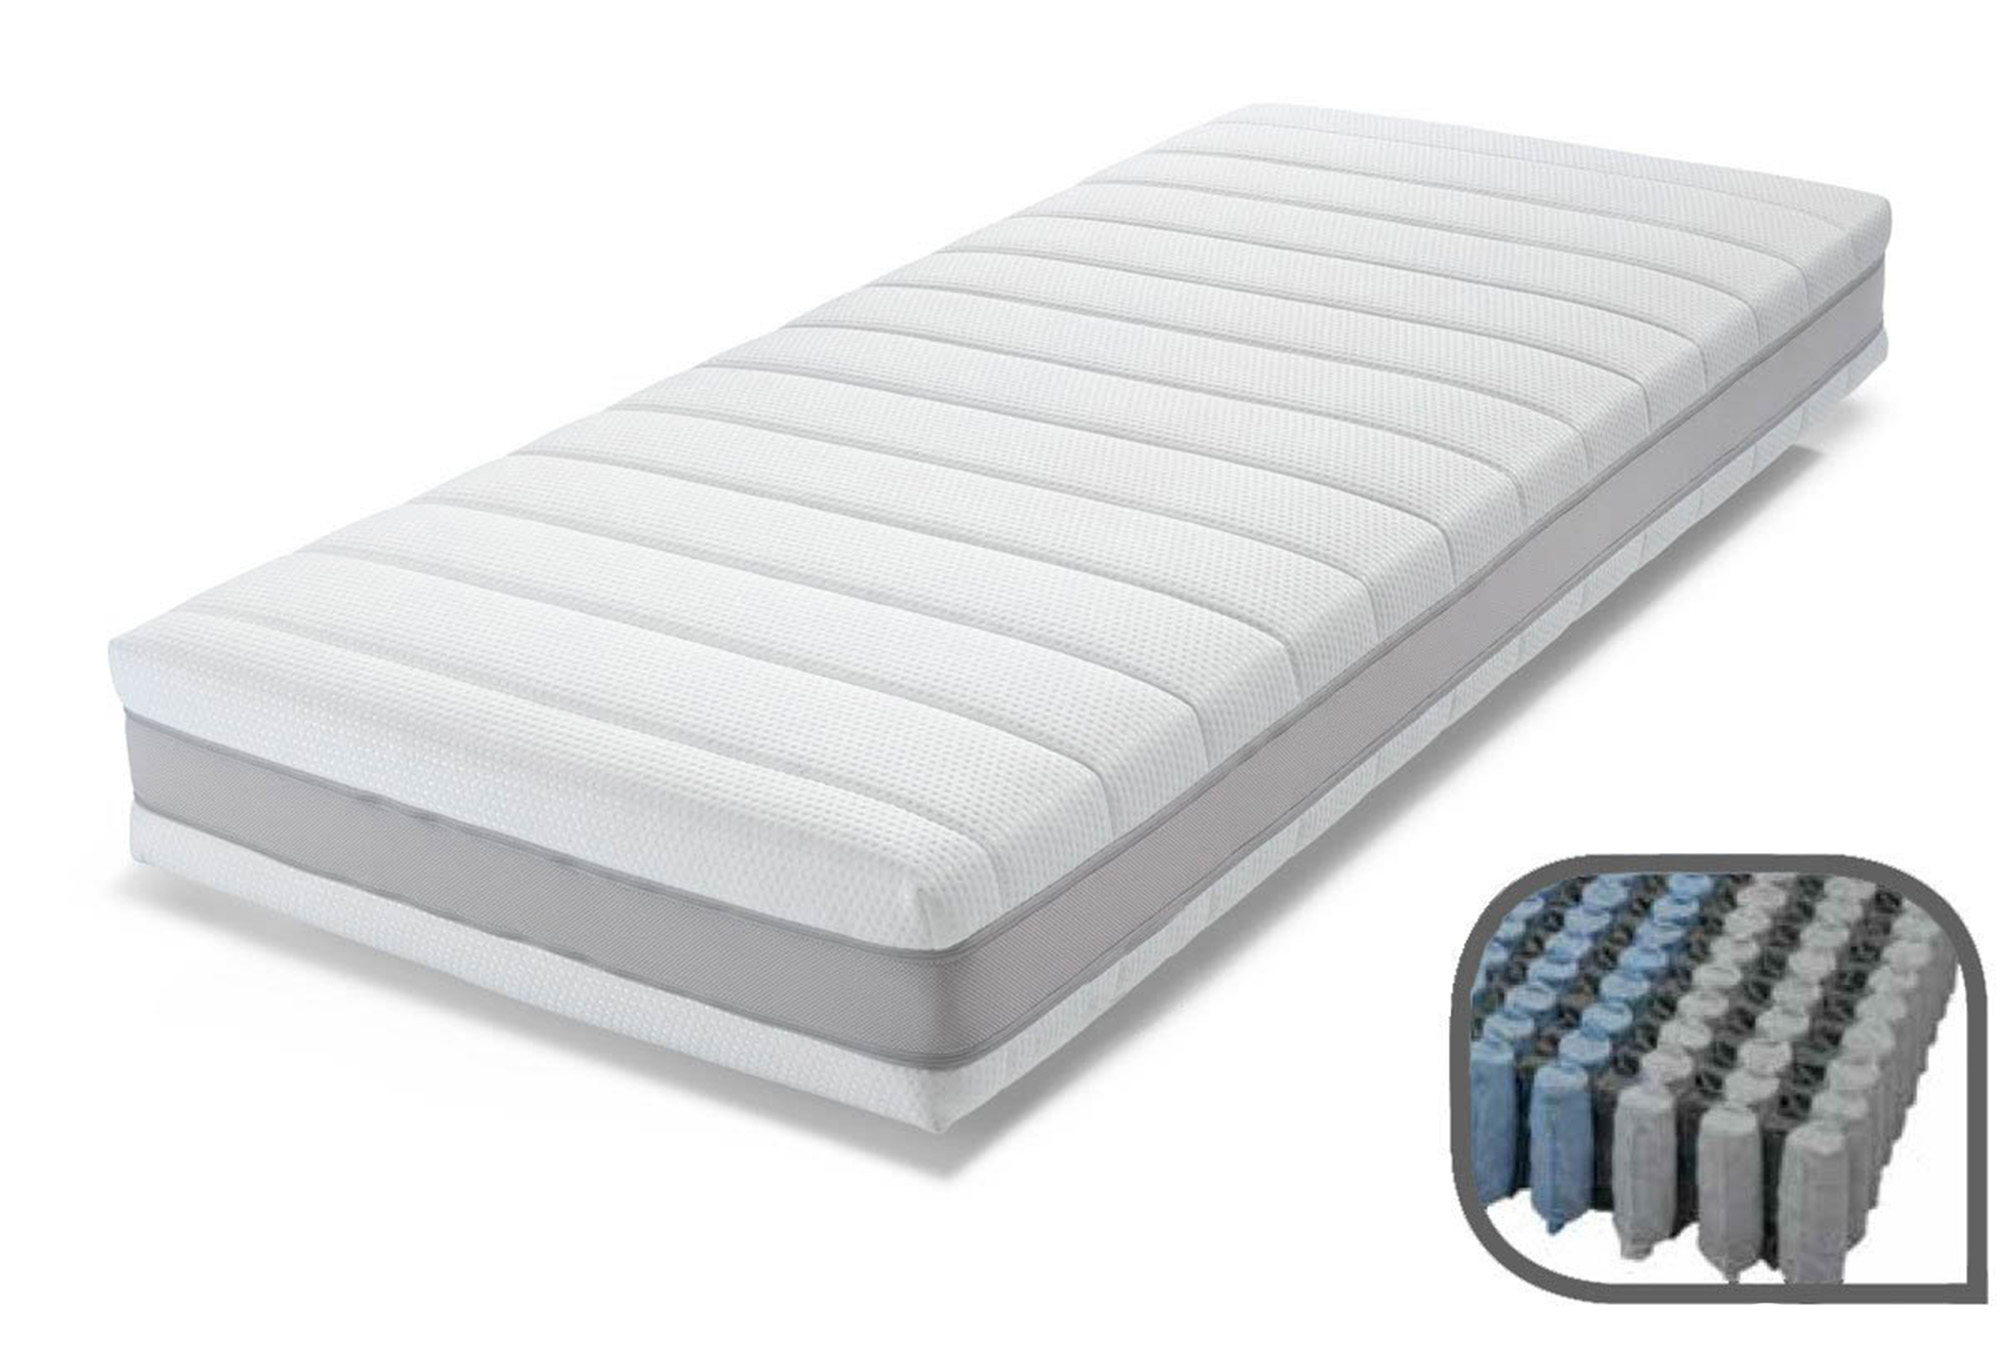 Atmos Visco Traagschuim Matras